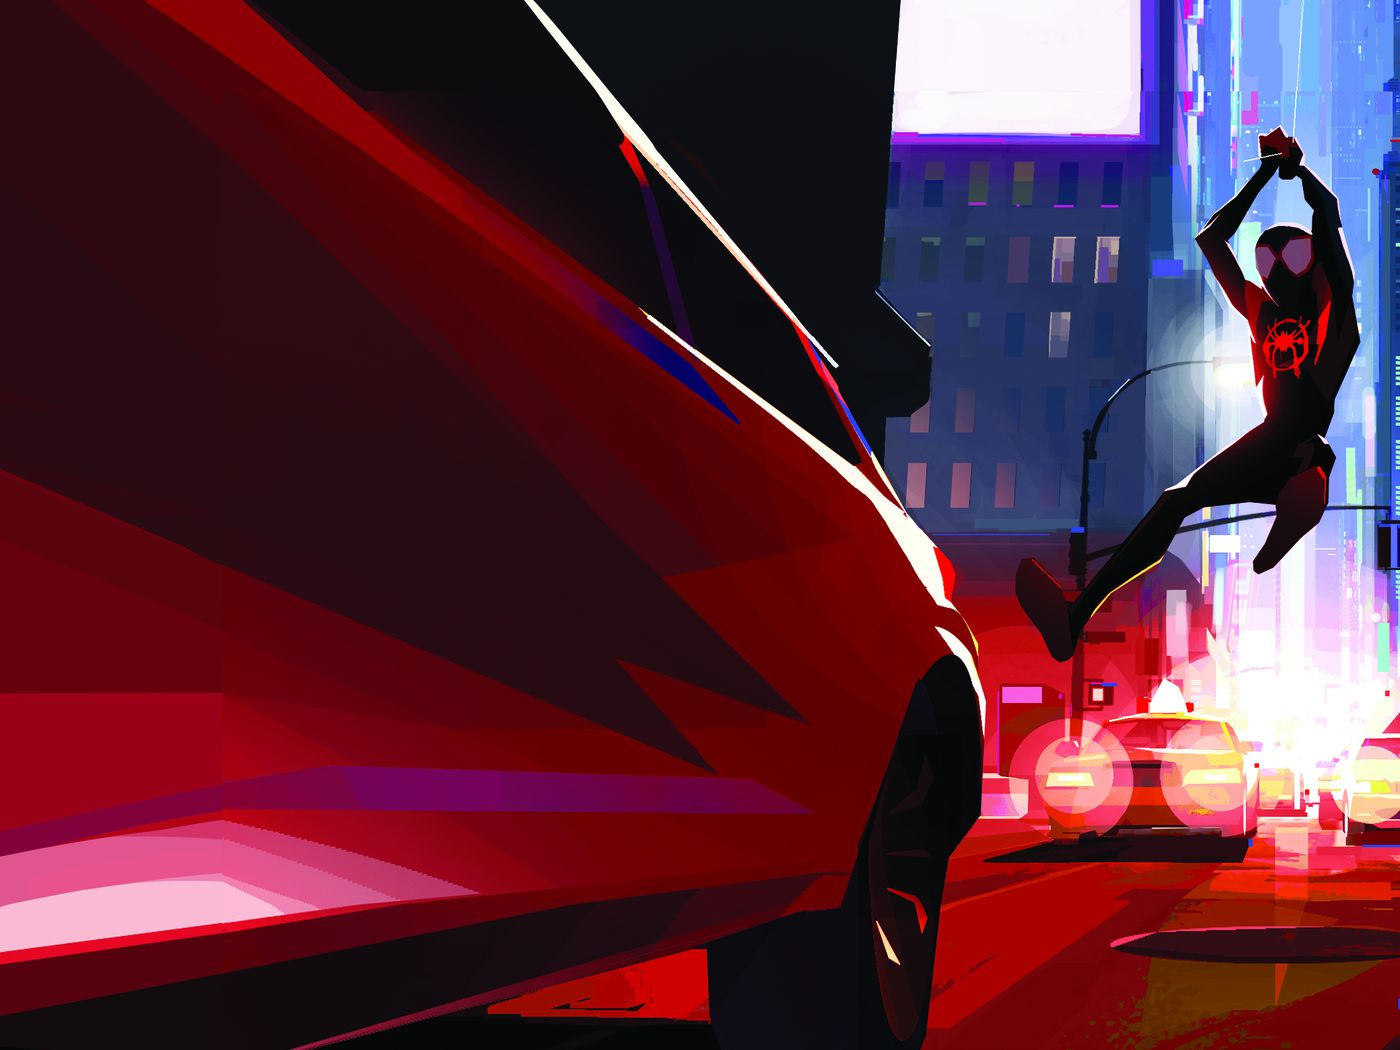 Miles Morales: How a new Spider-Man paved the way for Spider-Verse